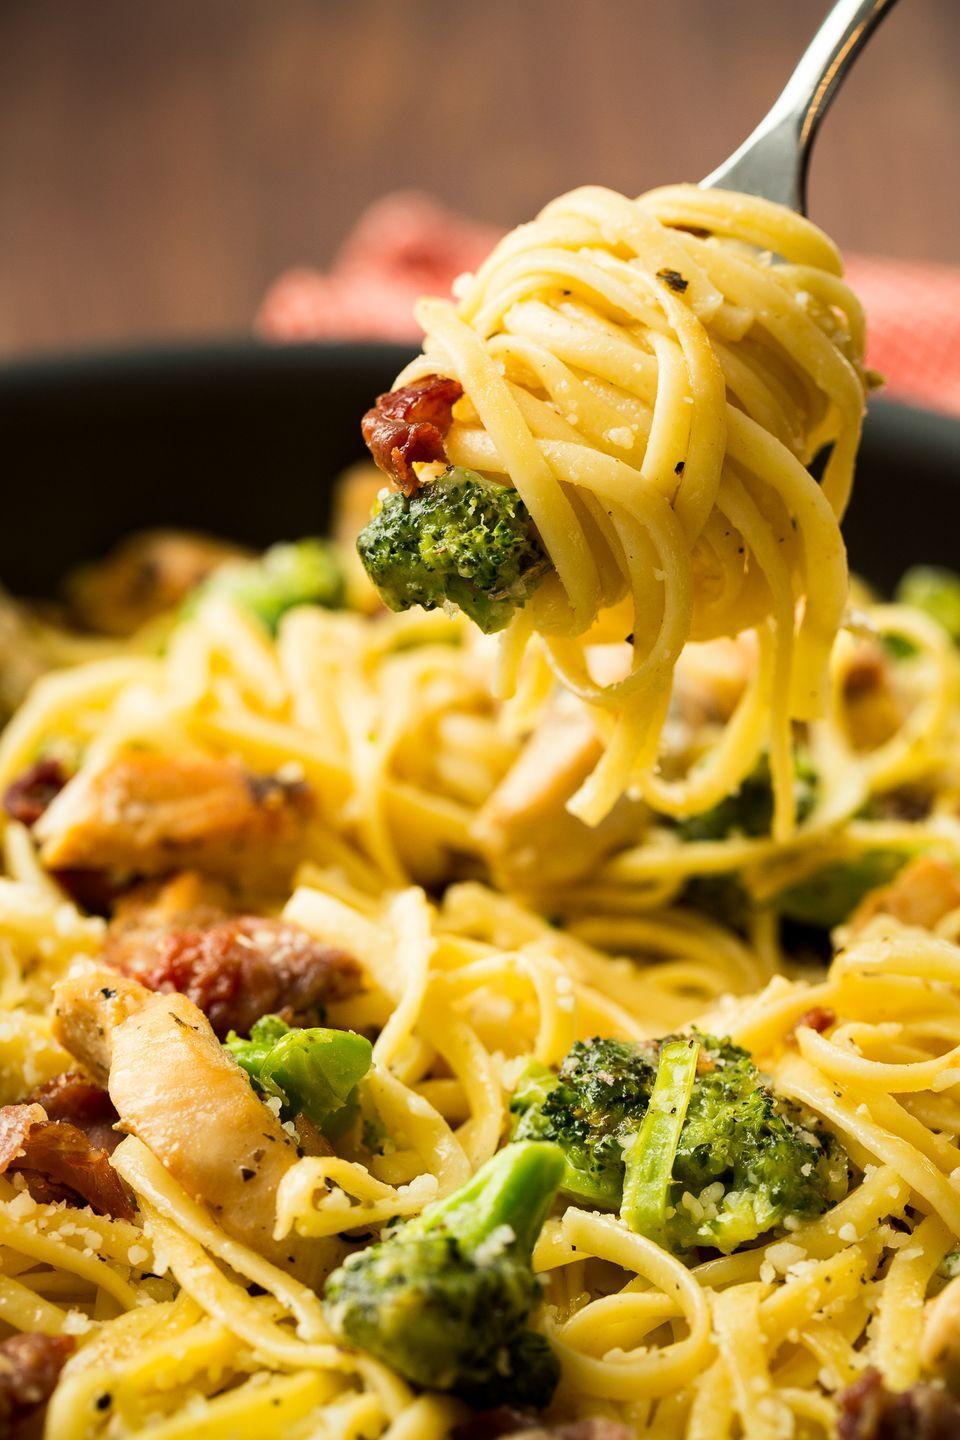 """<p>Crispy morsels of prosciutto will make you forget <em>all</em> about bacon.</p><p>Get the recipe from <a href=""""https://www.delish.com/cooking/recipe-ideas/recipes/a47050/prosciutto-chicken-pasta-recipe/"""" rel=""""nofollow noopener"""" target=""""_blank"""" data-ylk=""""slk:Delish"""" class=""""link rapid-noclick-resp"""">Delish</a>.</p>"""